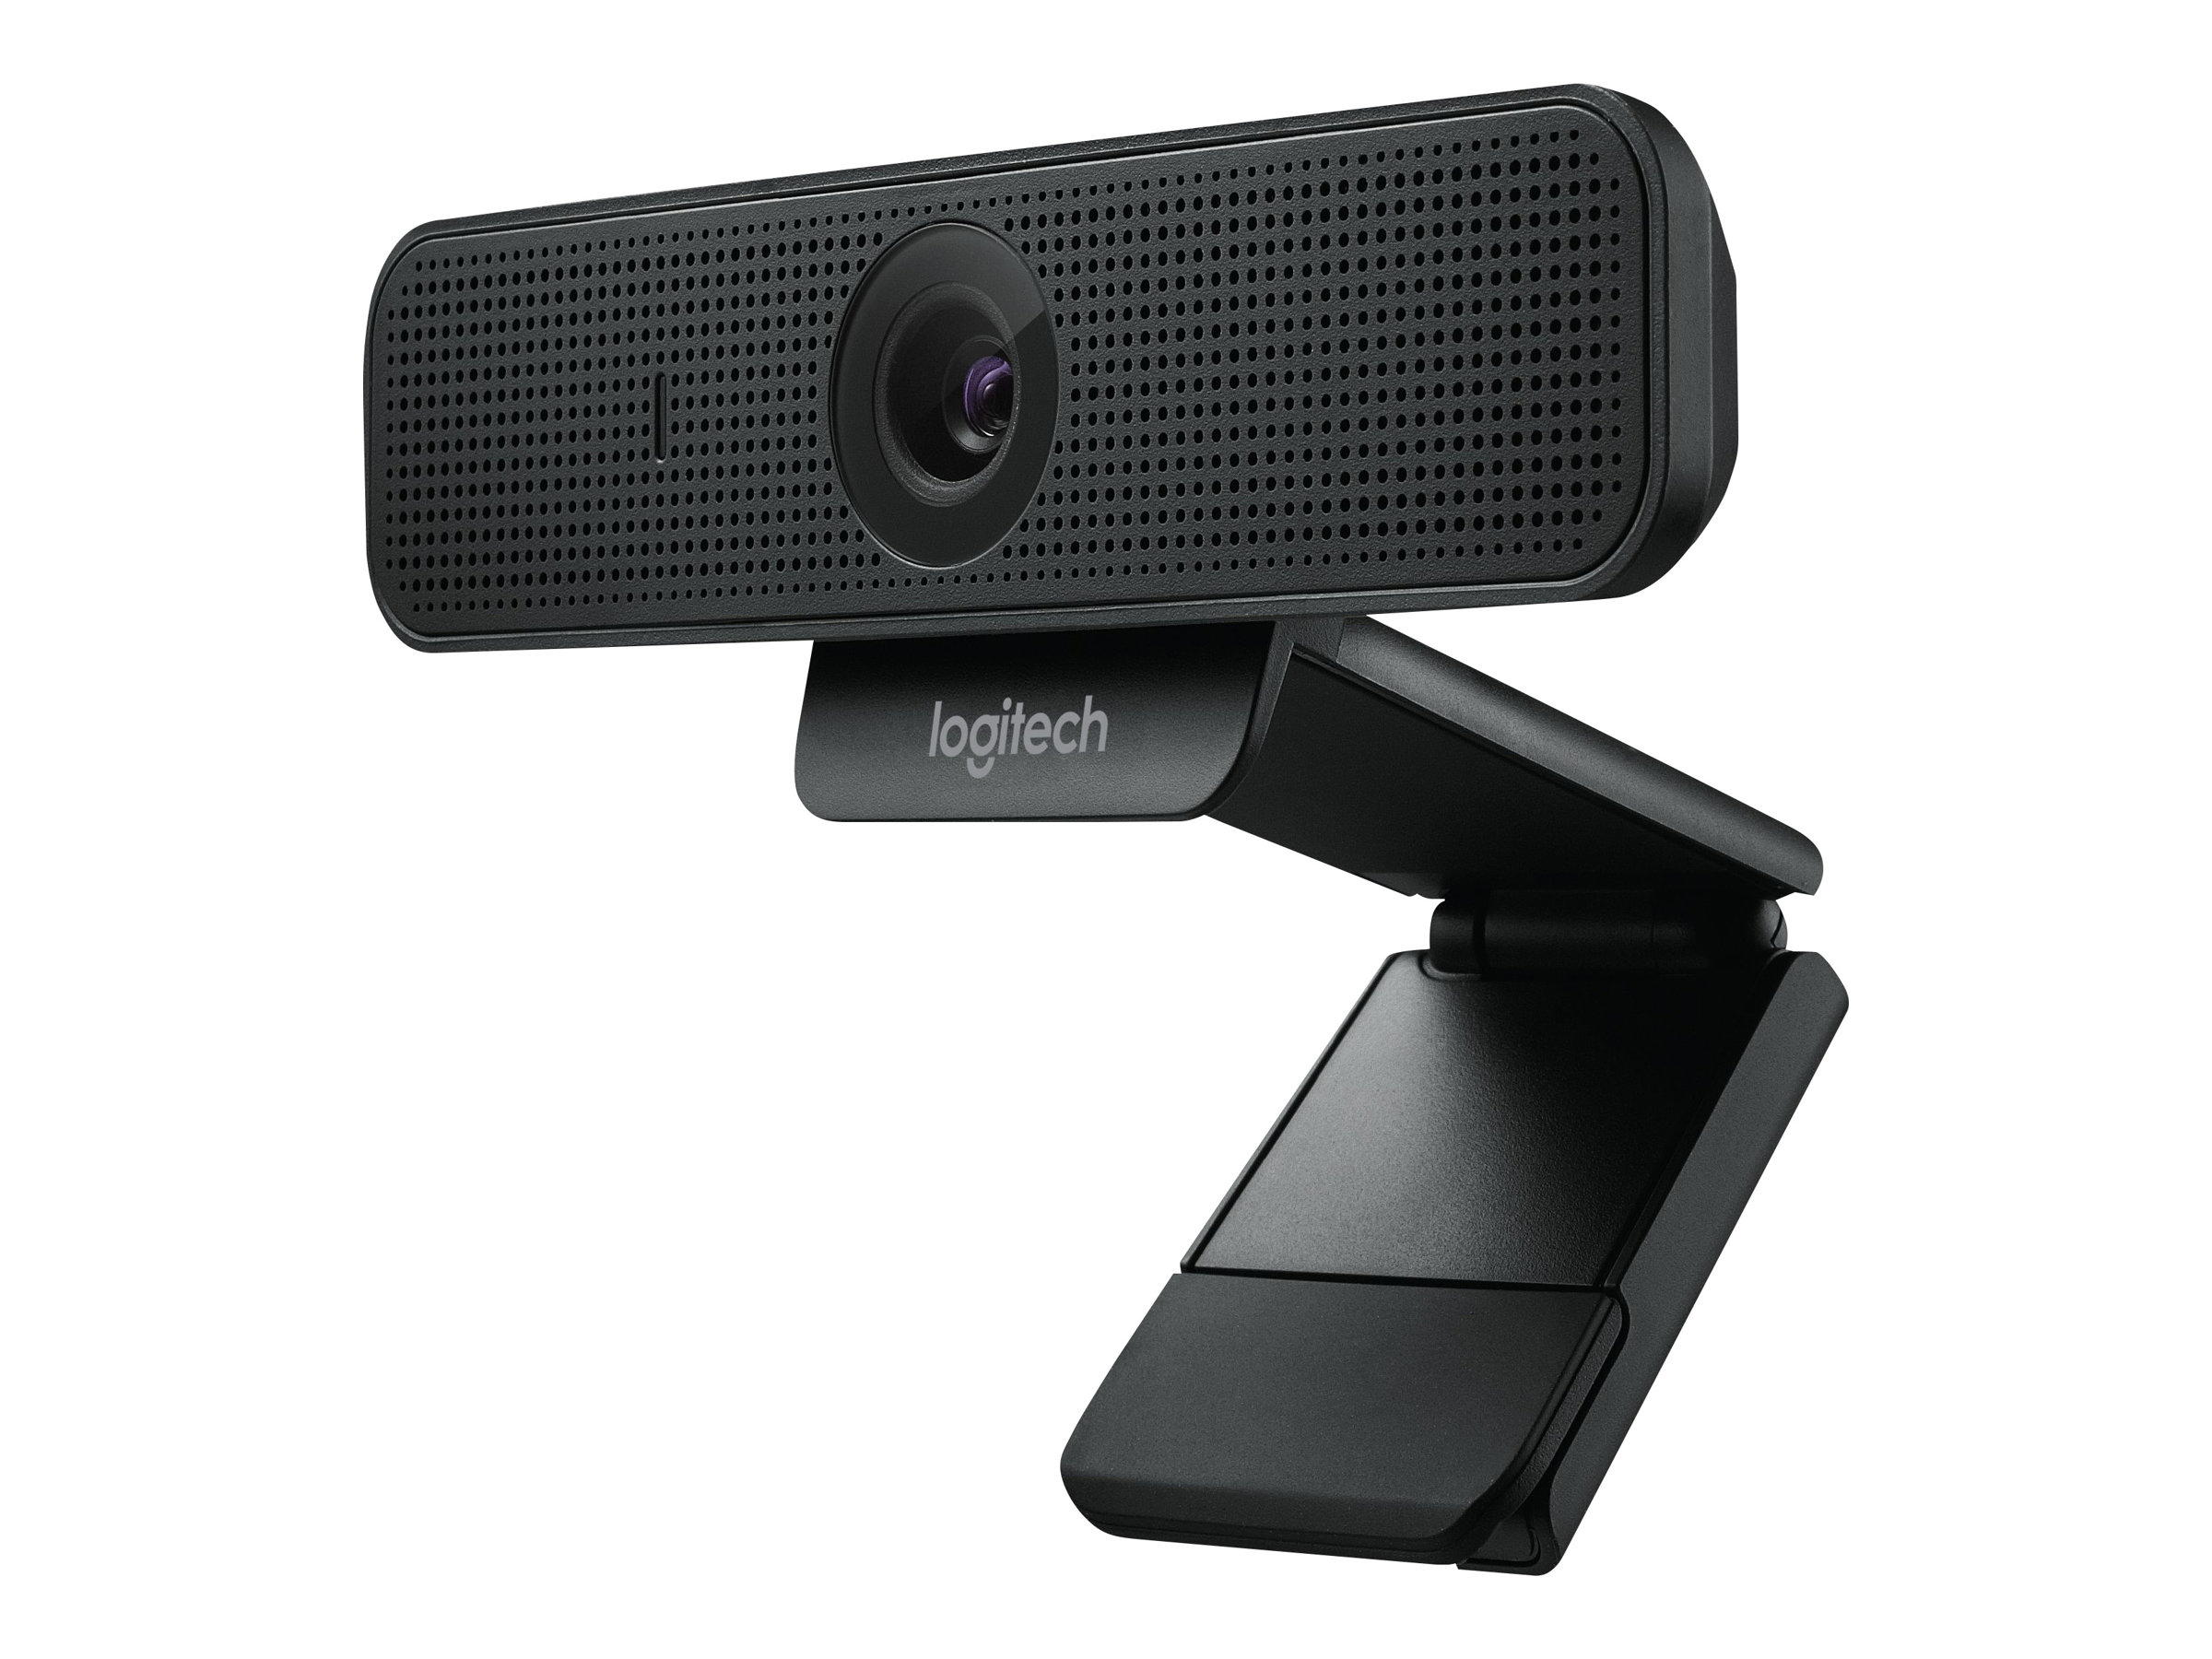 Logitech Webcam C925e - Web-Kamera - Farbe - 1920 x 1080 - Audio - USB 2.0